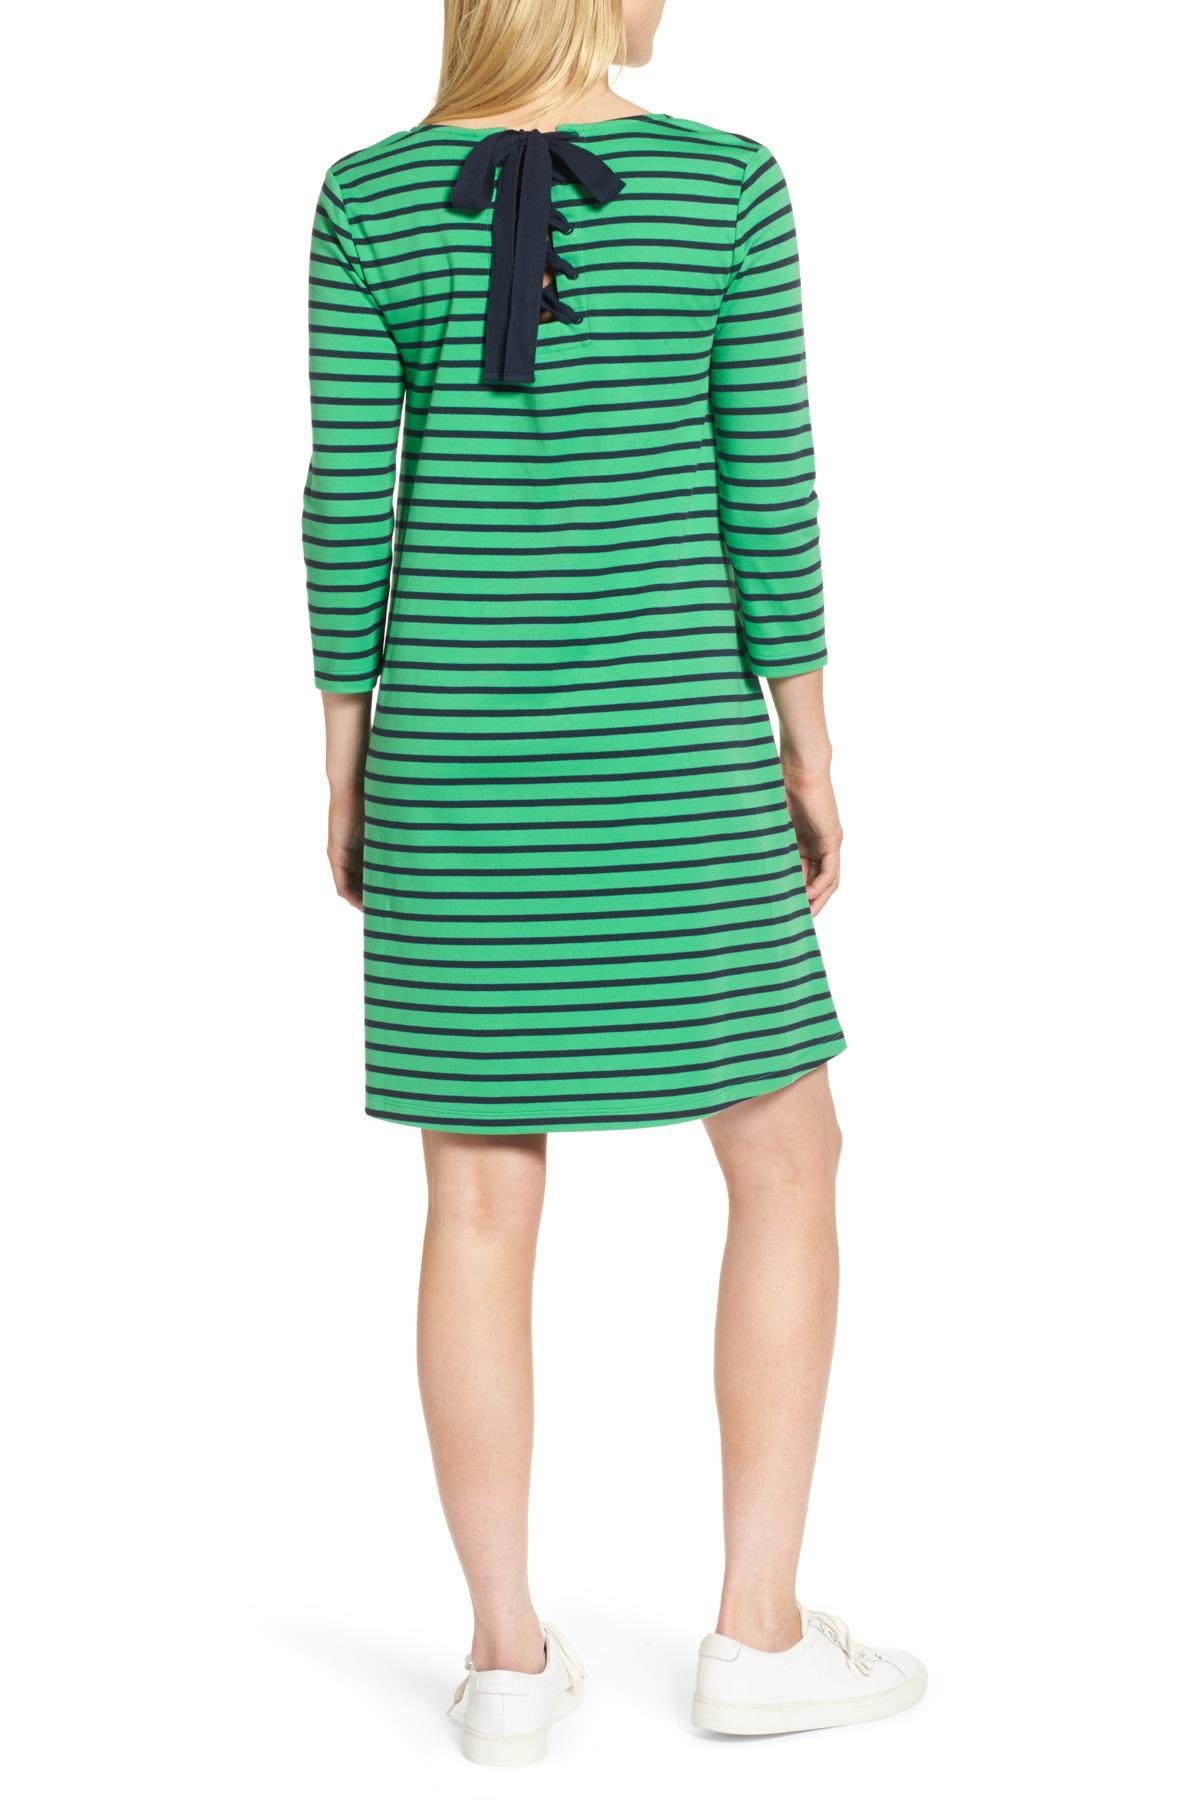 f64ae10166 Lyst - 1901 Tie Back Stripe Knit Dress in Green